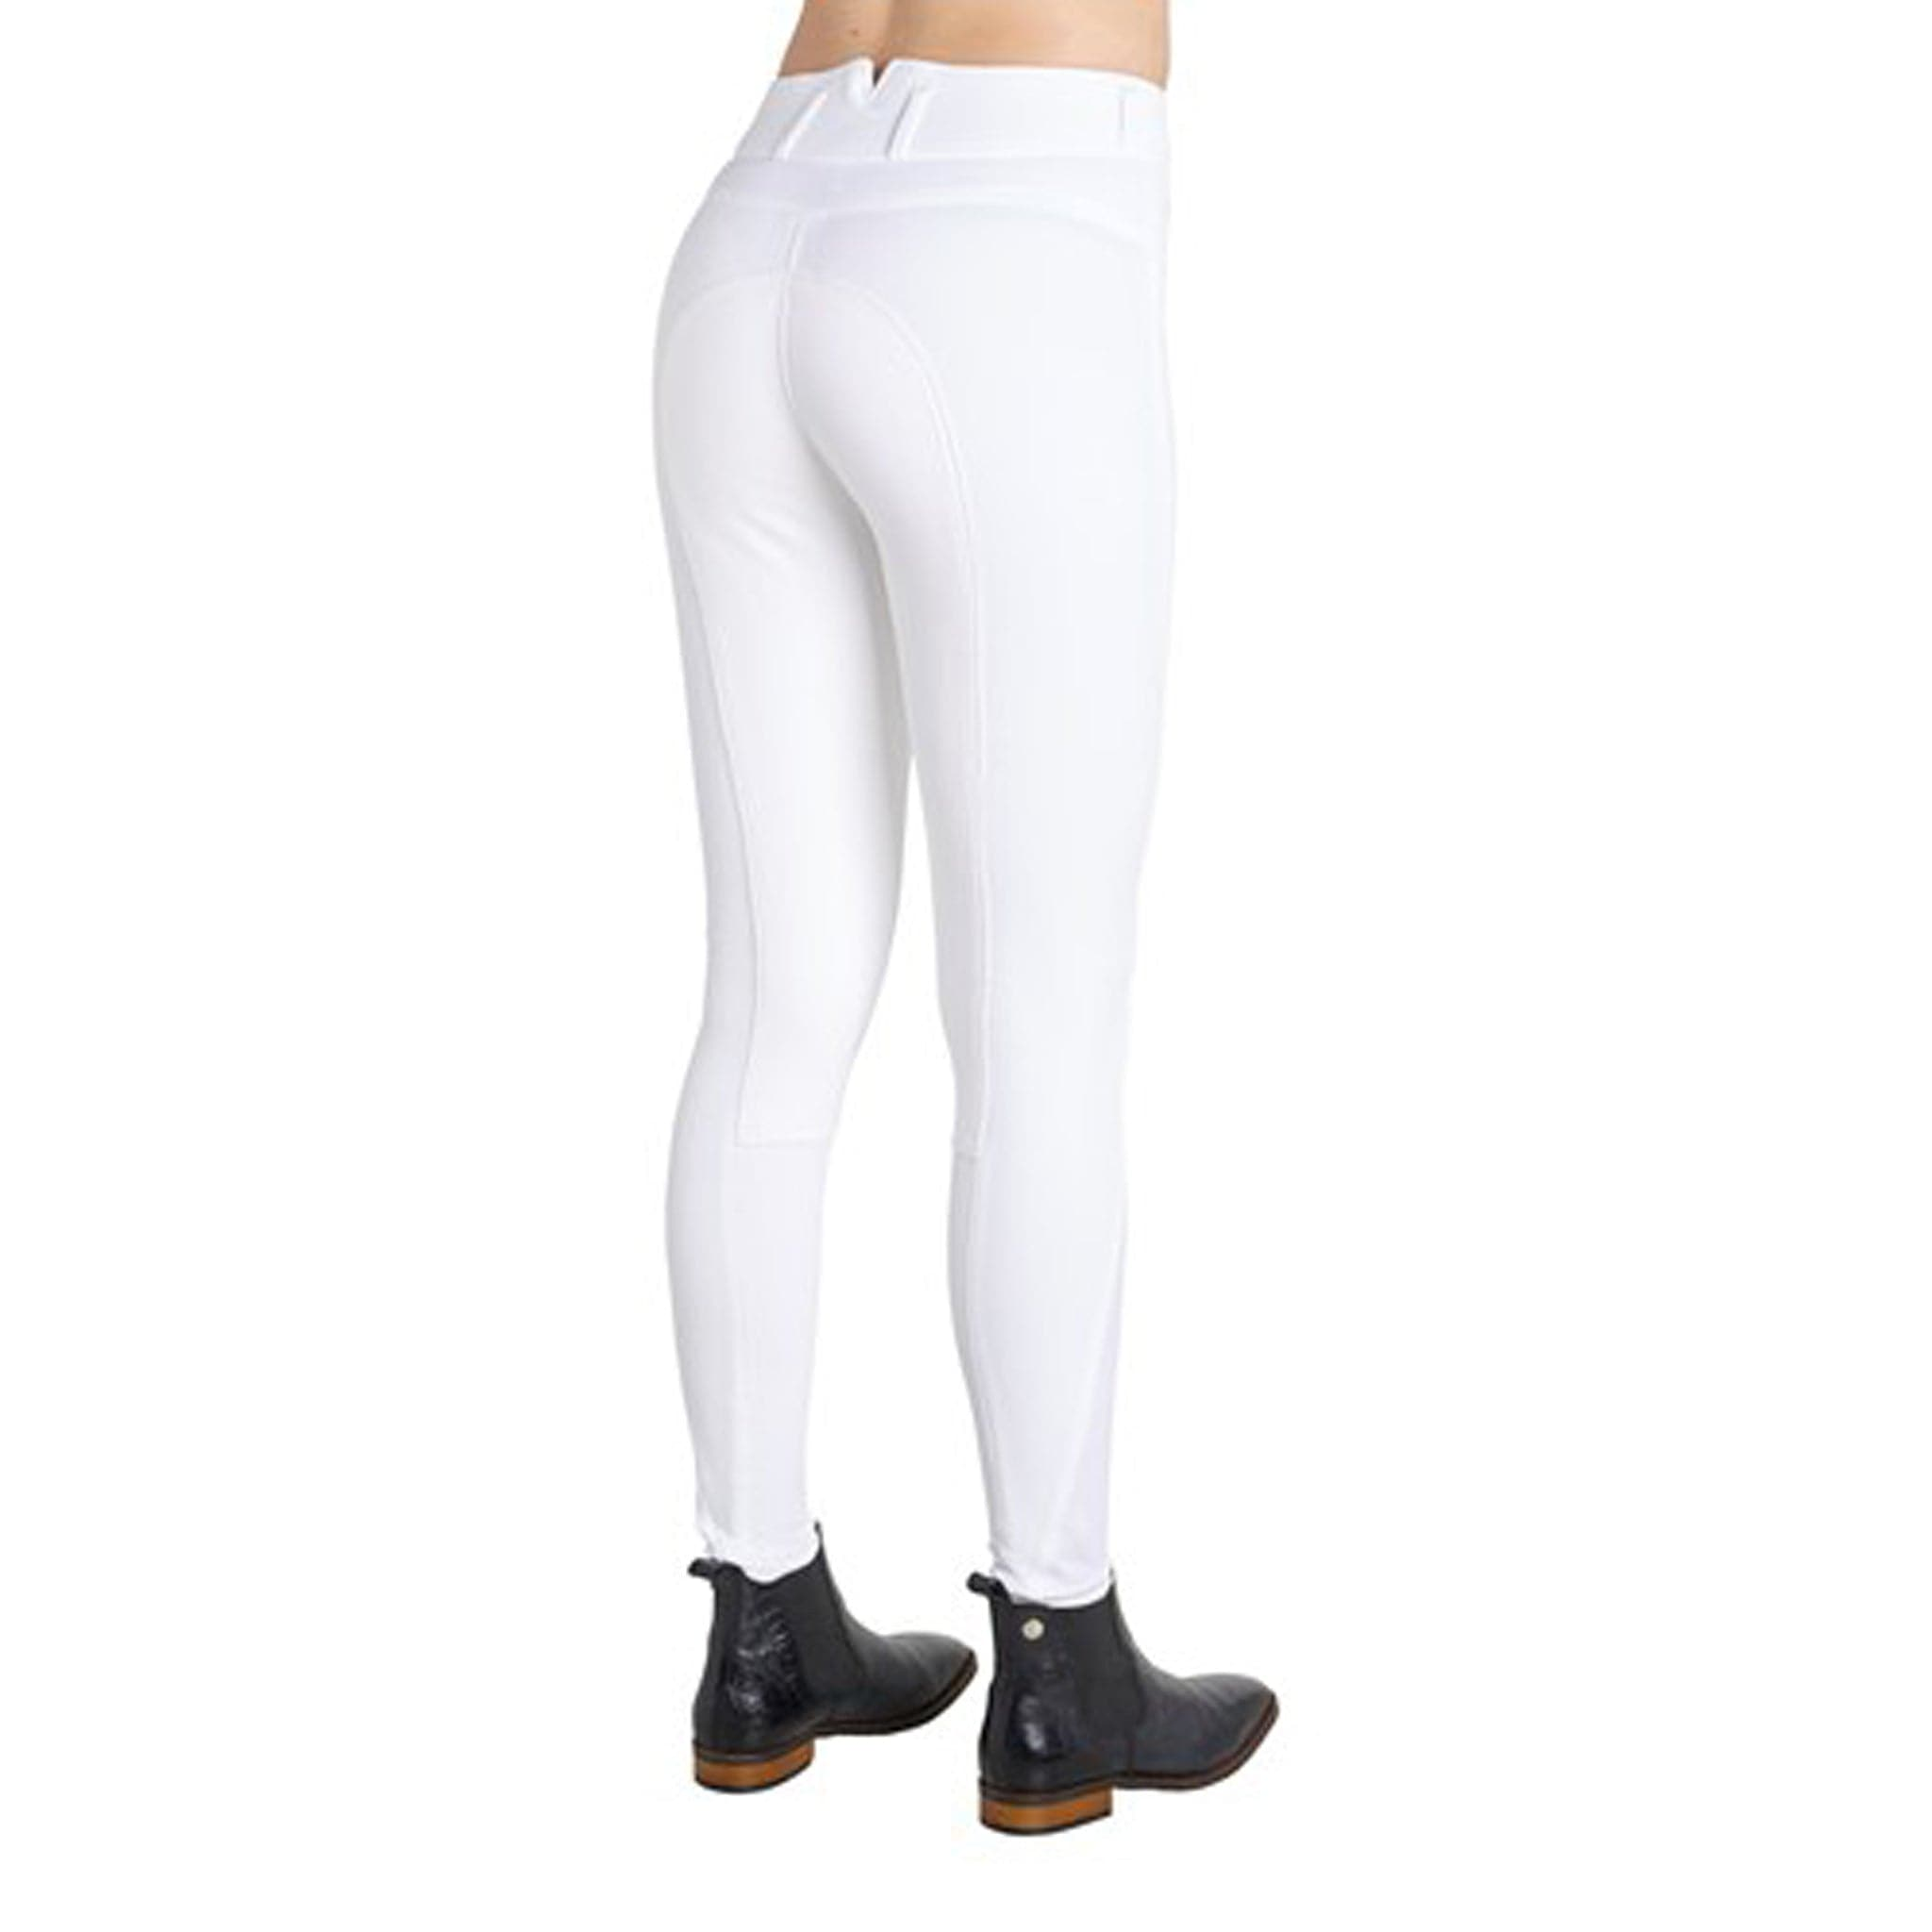 Montar High Waist Alos Full Seat Breeches White 2078